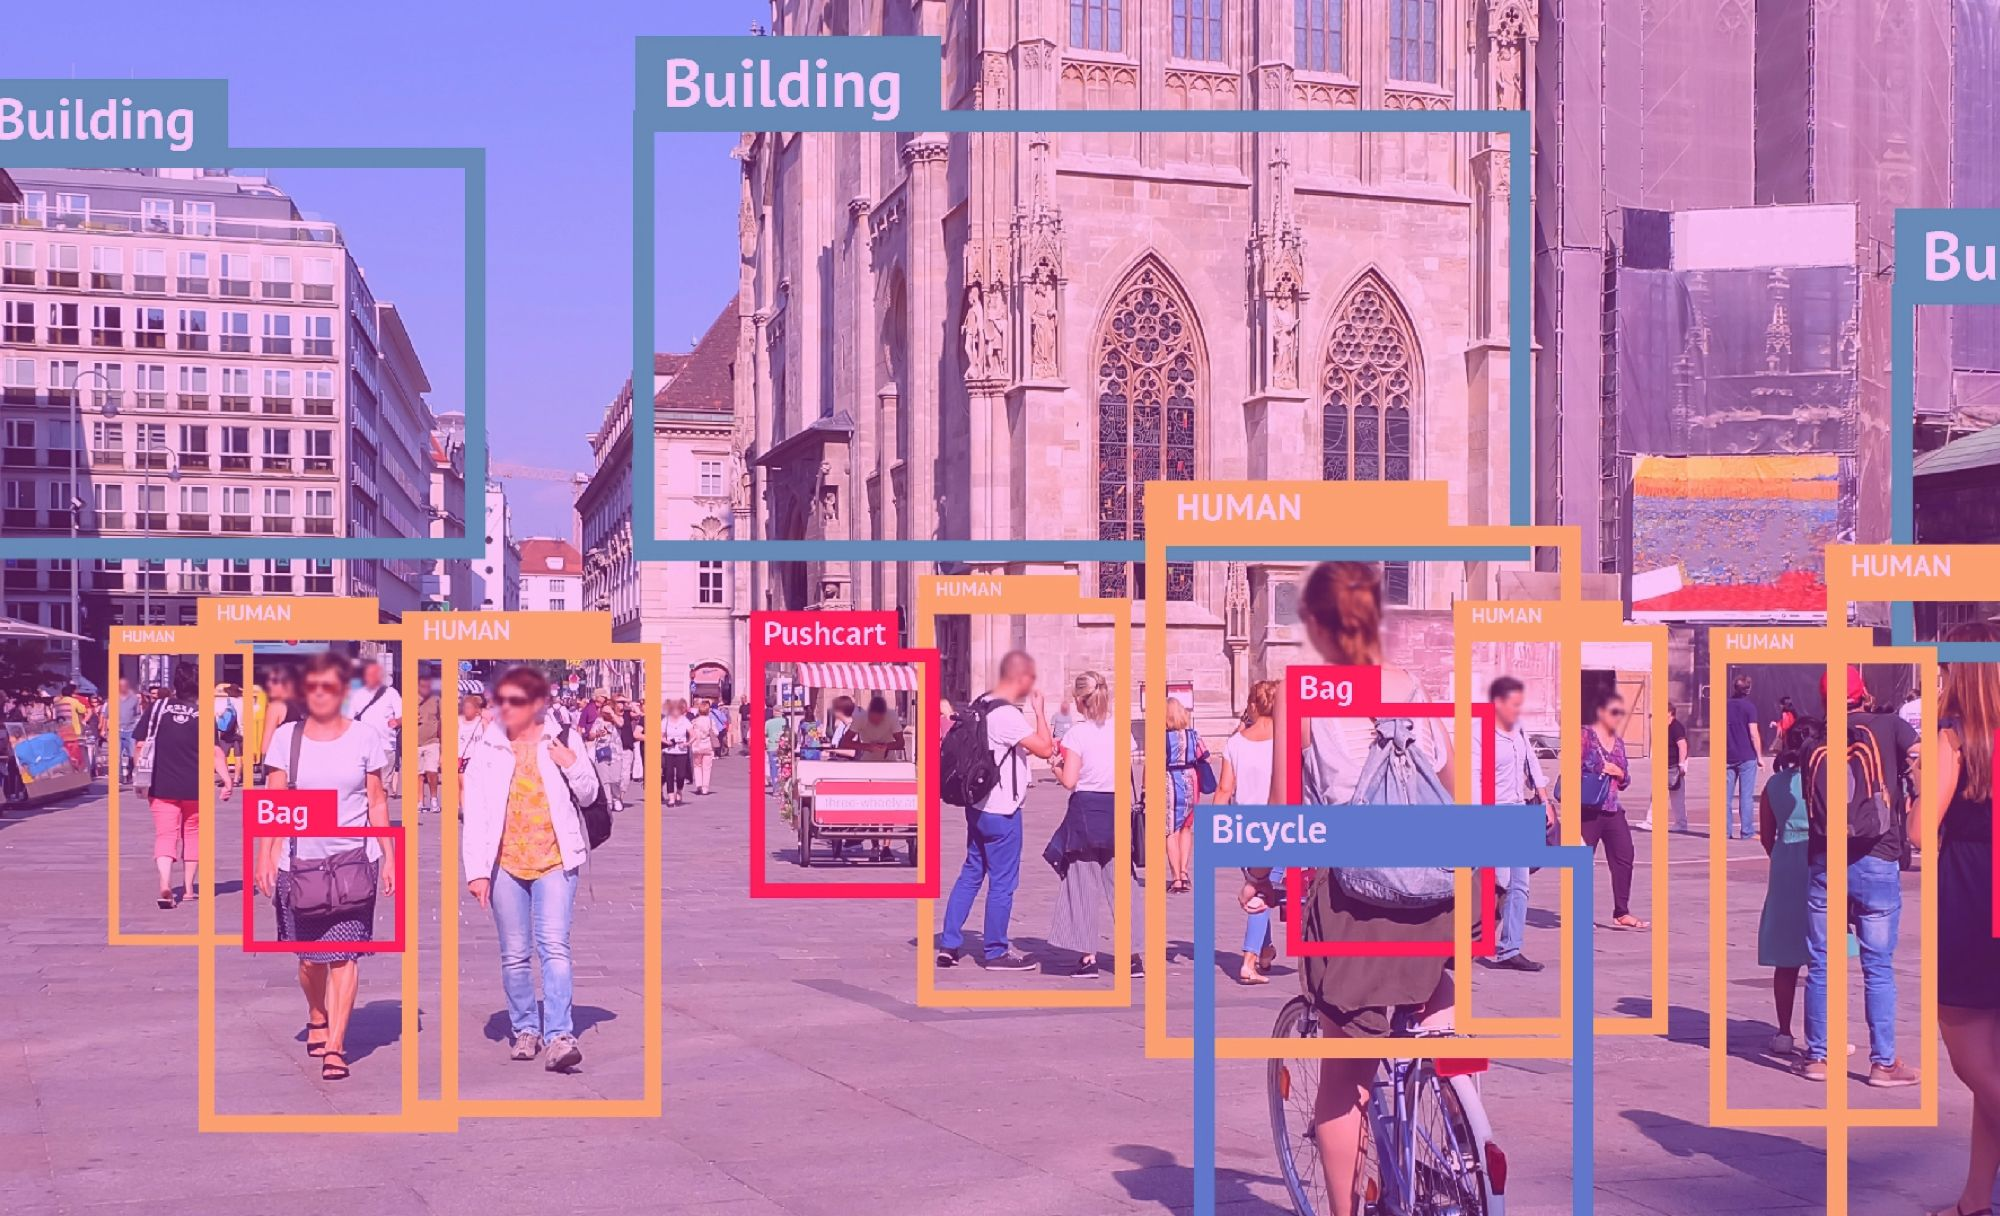 How to Train a Scaled-YOLOv4 Object Detection Model